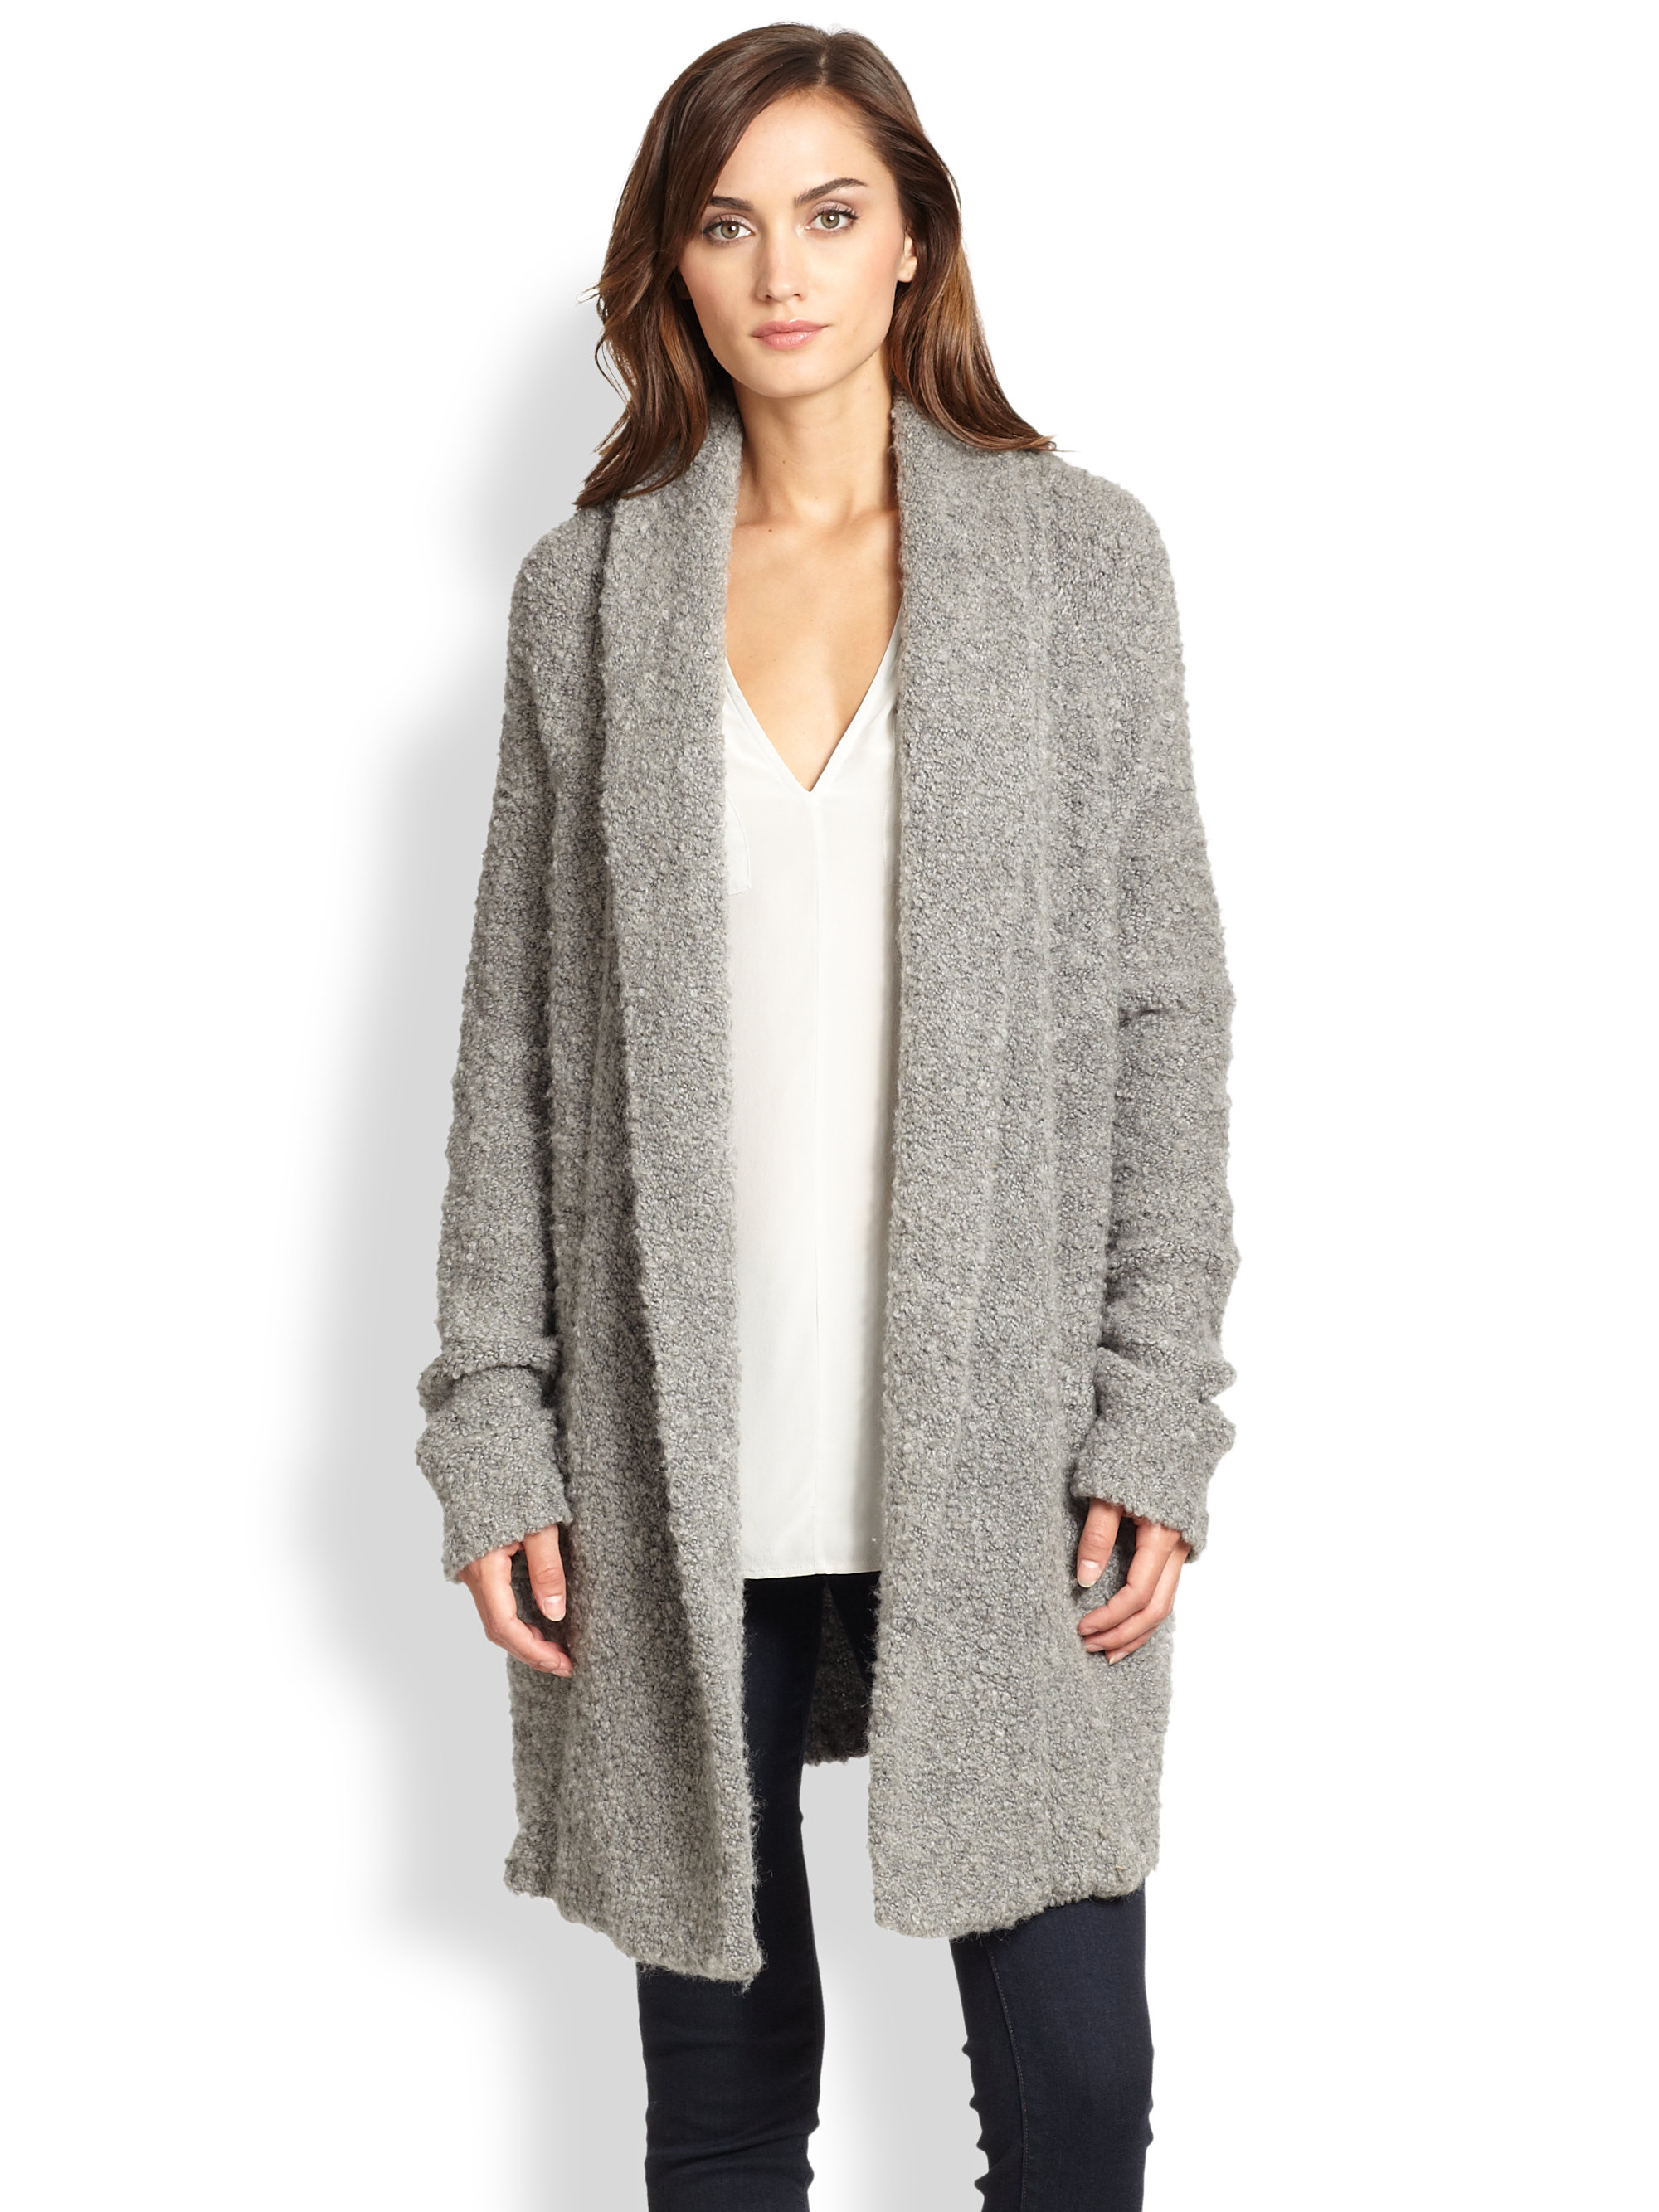 Joie Solome Soft BouclÉ Cardigan in Gray | Lyst